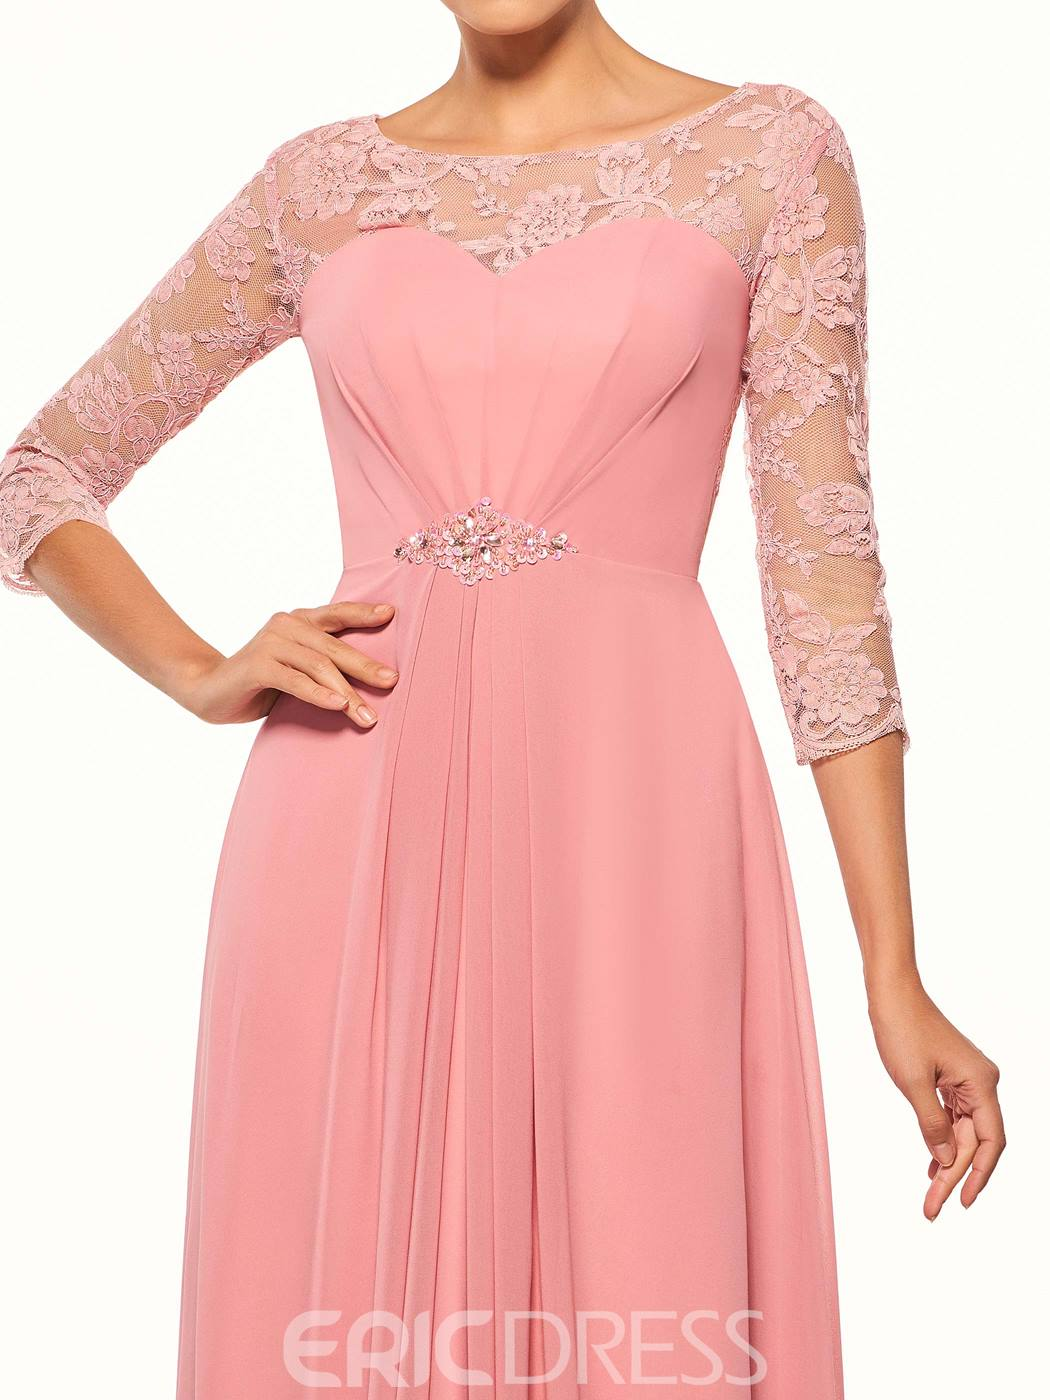 Ericdress Elegant Scoop 3/4 Length Sleeves Beaded Long A Line Mother Of The Bride Dress